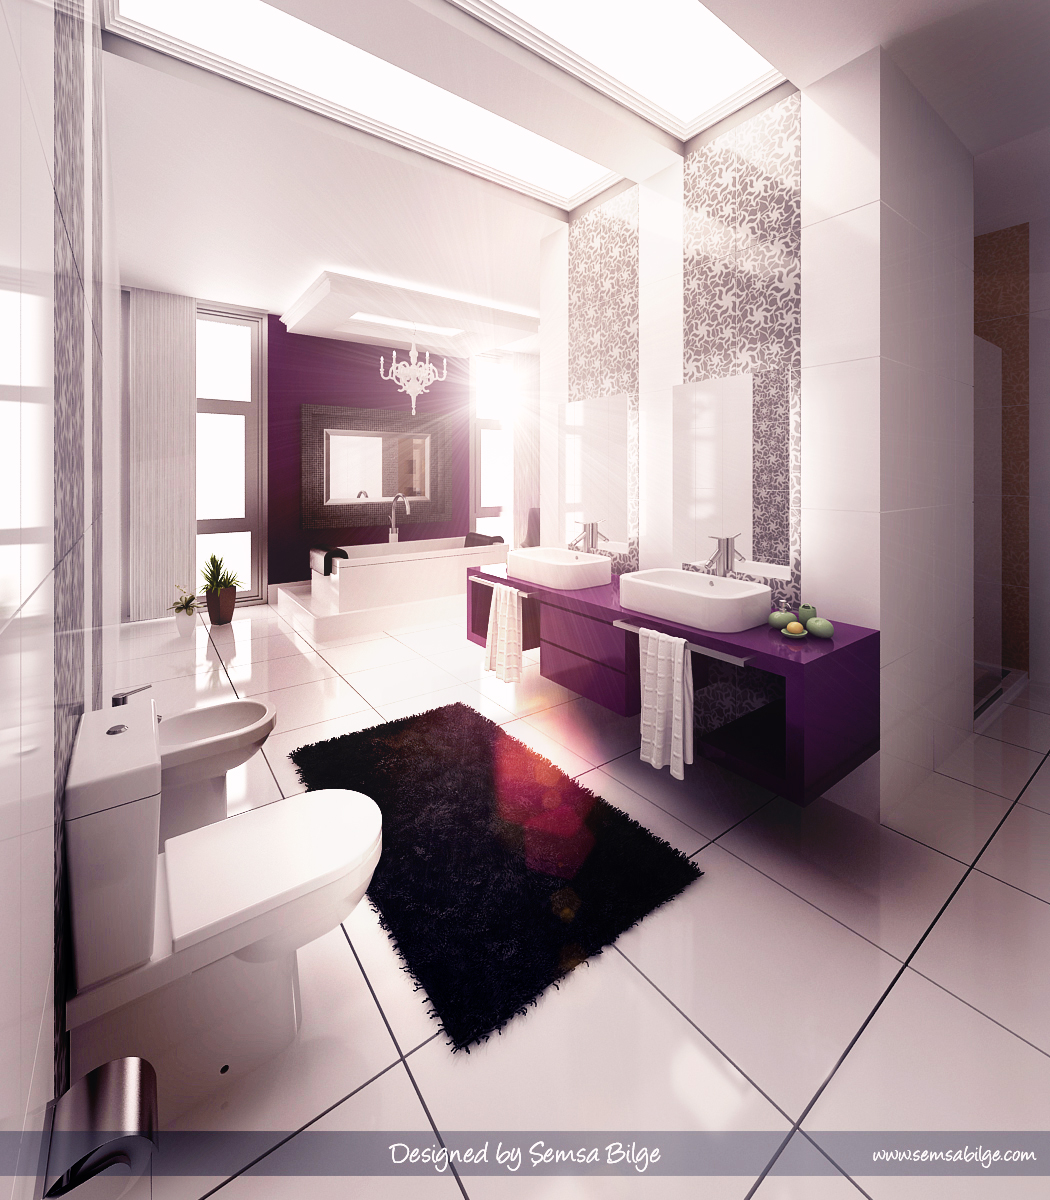 Restroom Design Ideas Of Inspiring Bathroom Designs For The Soul